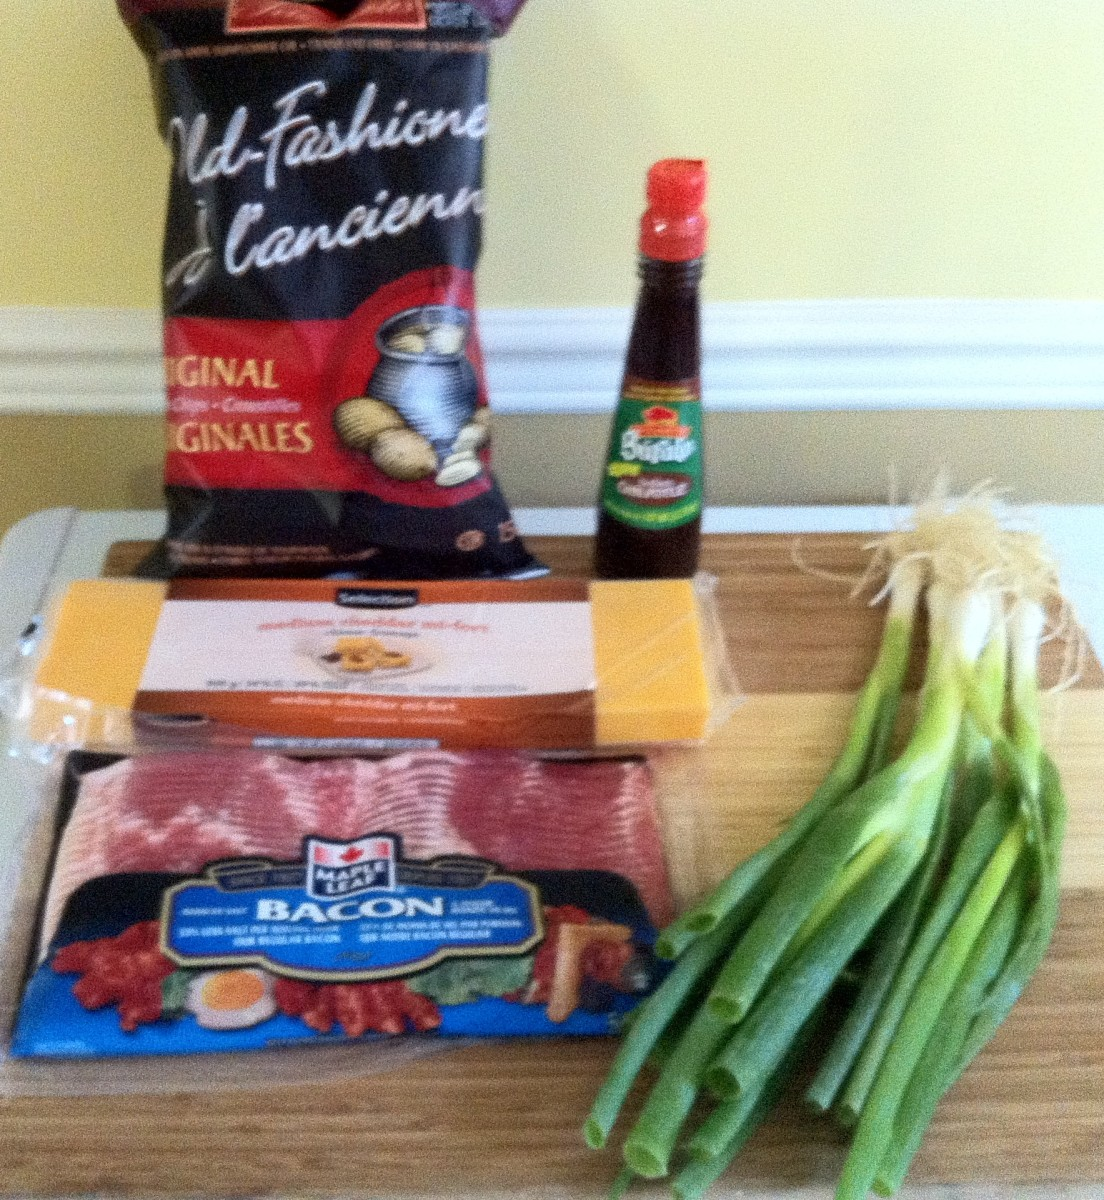 Ingredients for Irish Nachos